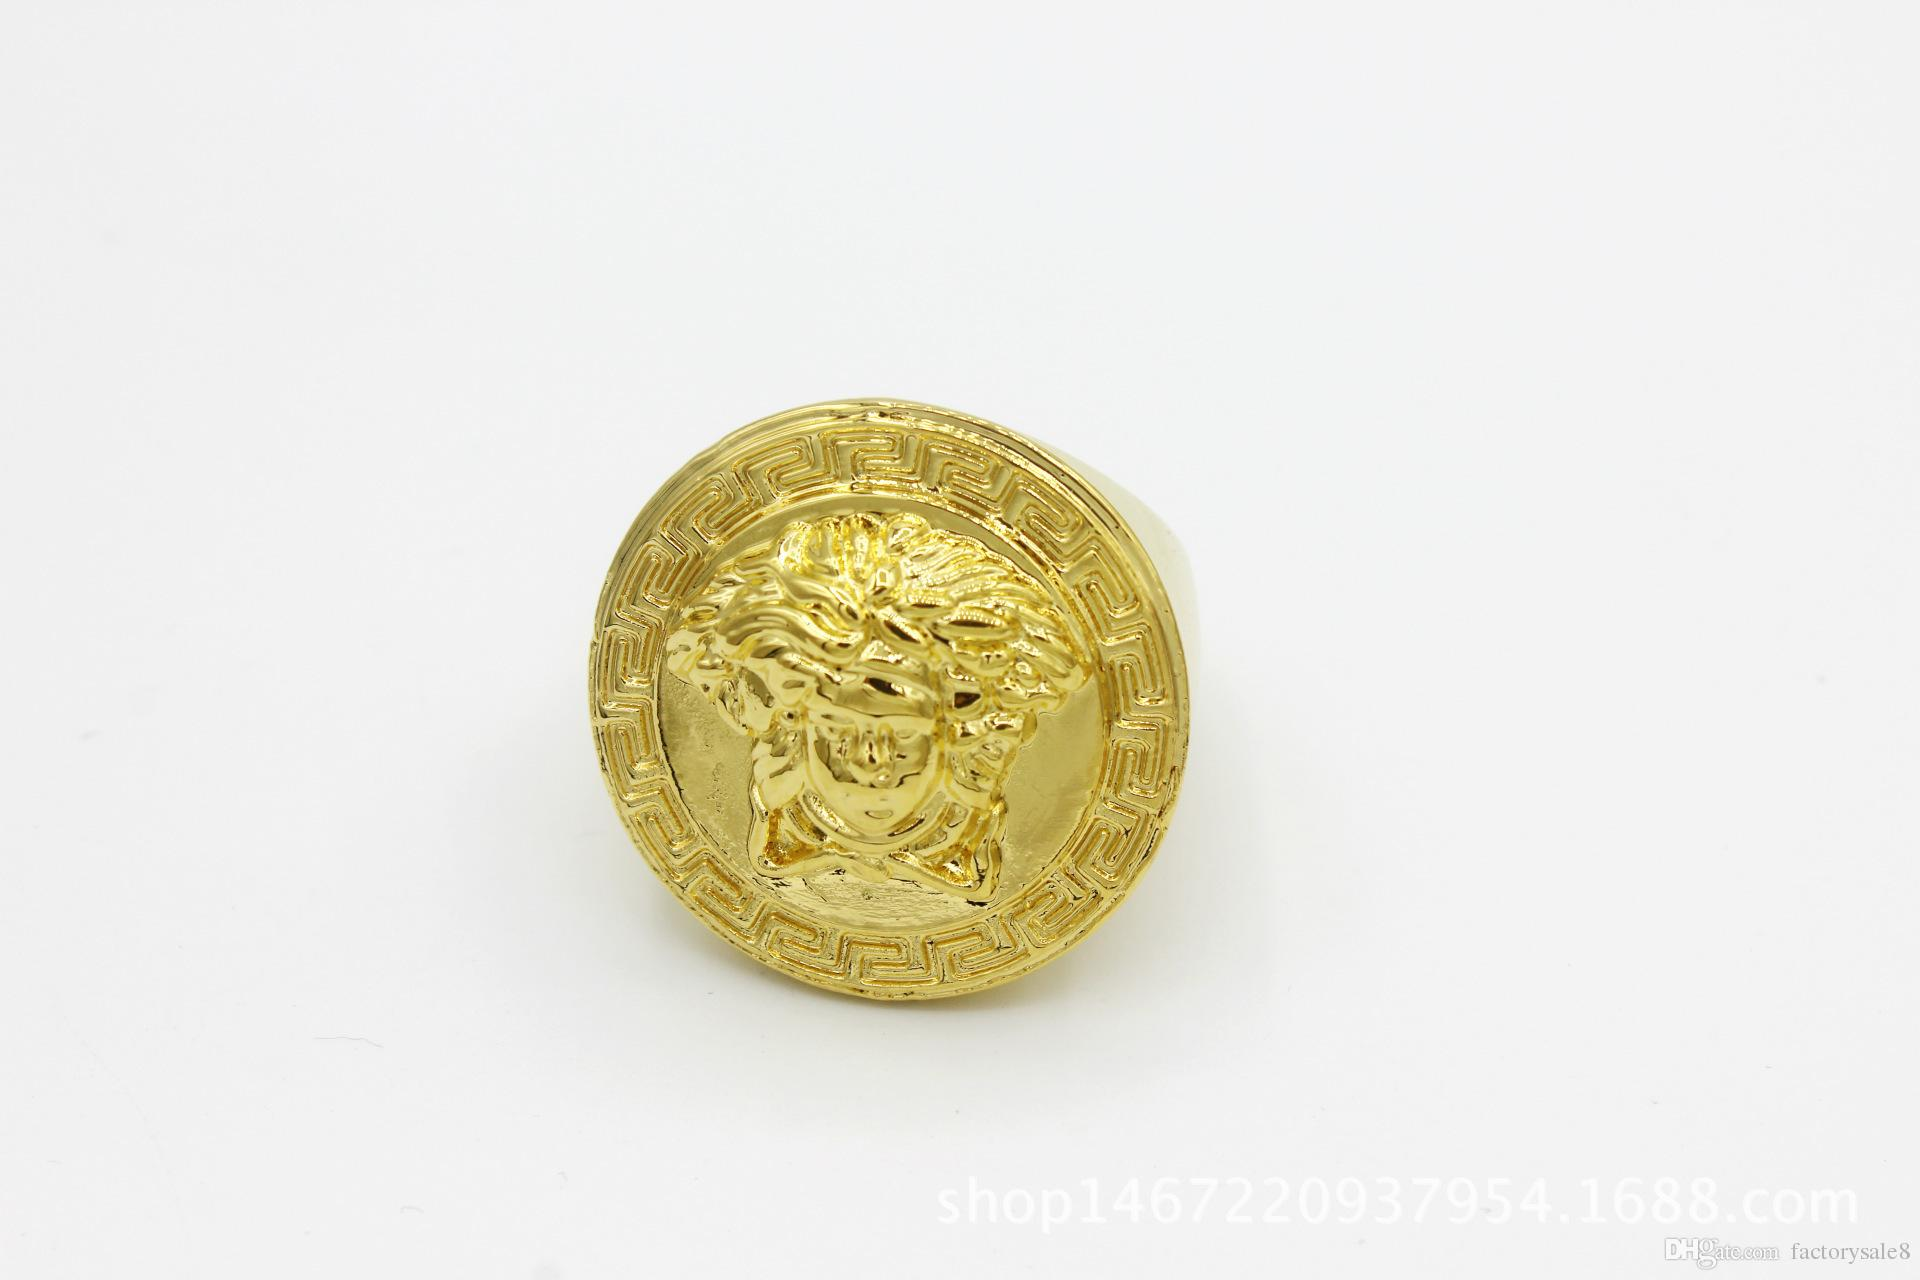 2018 New Hip Hop Medusha Ring With Corn Chain 24K Gold Plated,hign quality and